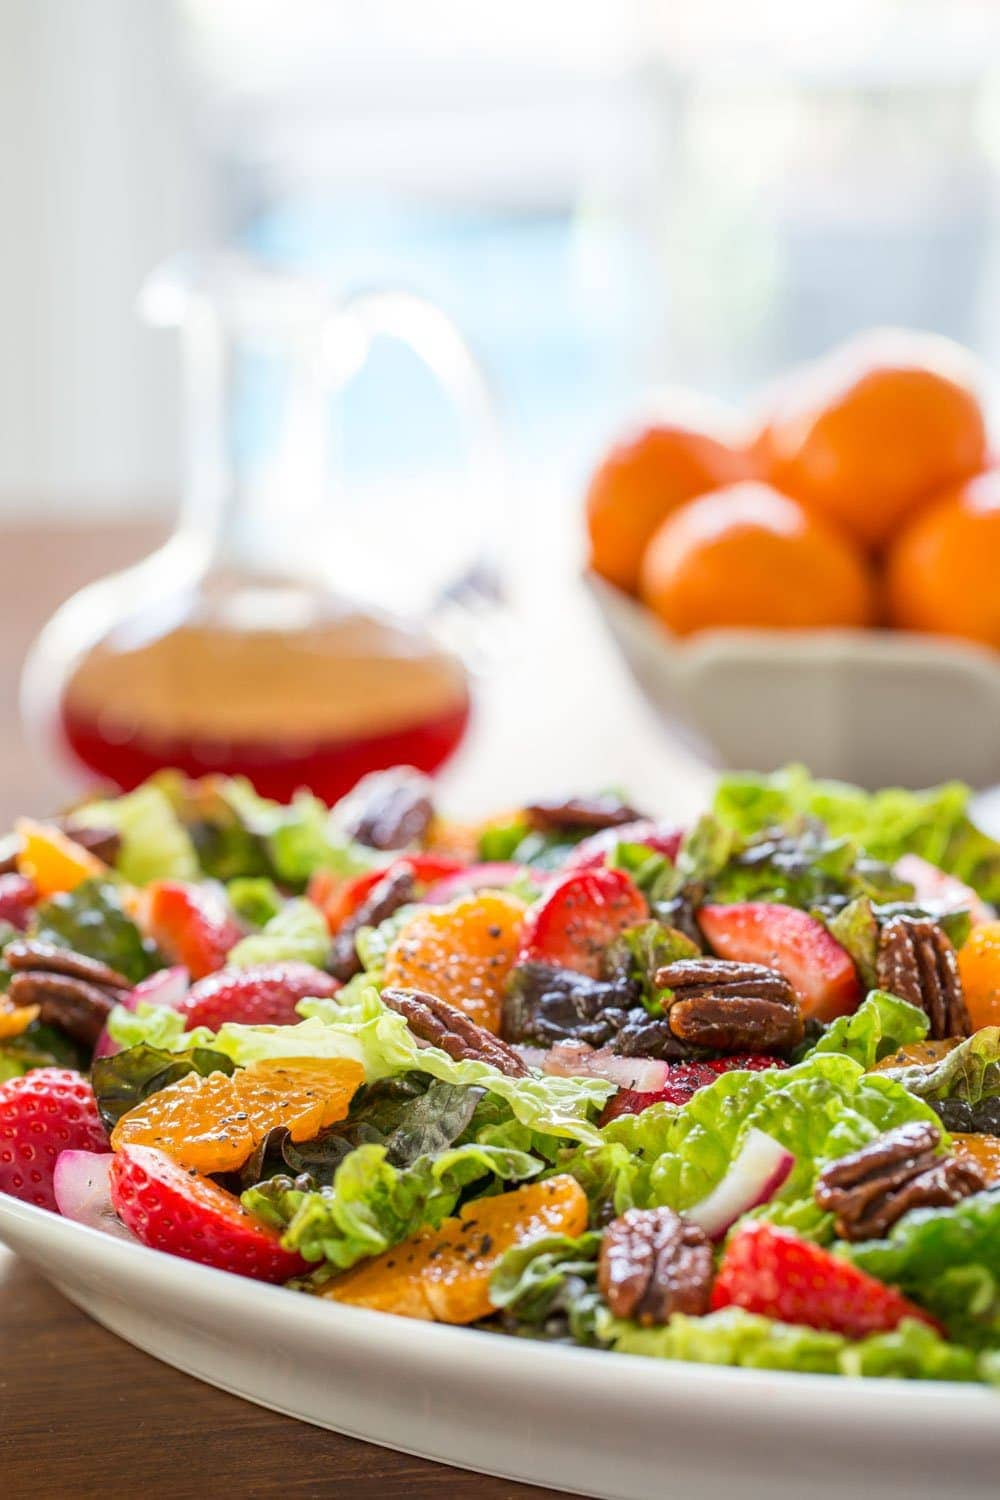 Strawberry Clementine Salad with Red Wine Vinegar Dressing - with an easy sweet, tangy dressing and a topping of caramelized pecans this delicious, fresh salad will add a splash of pizzazz to any meal.